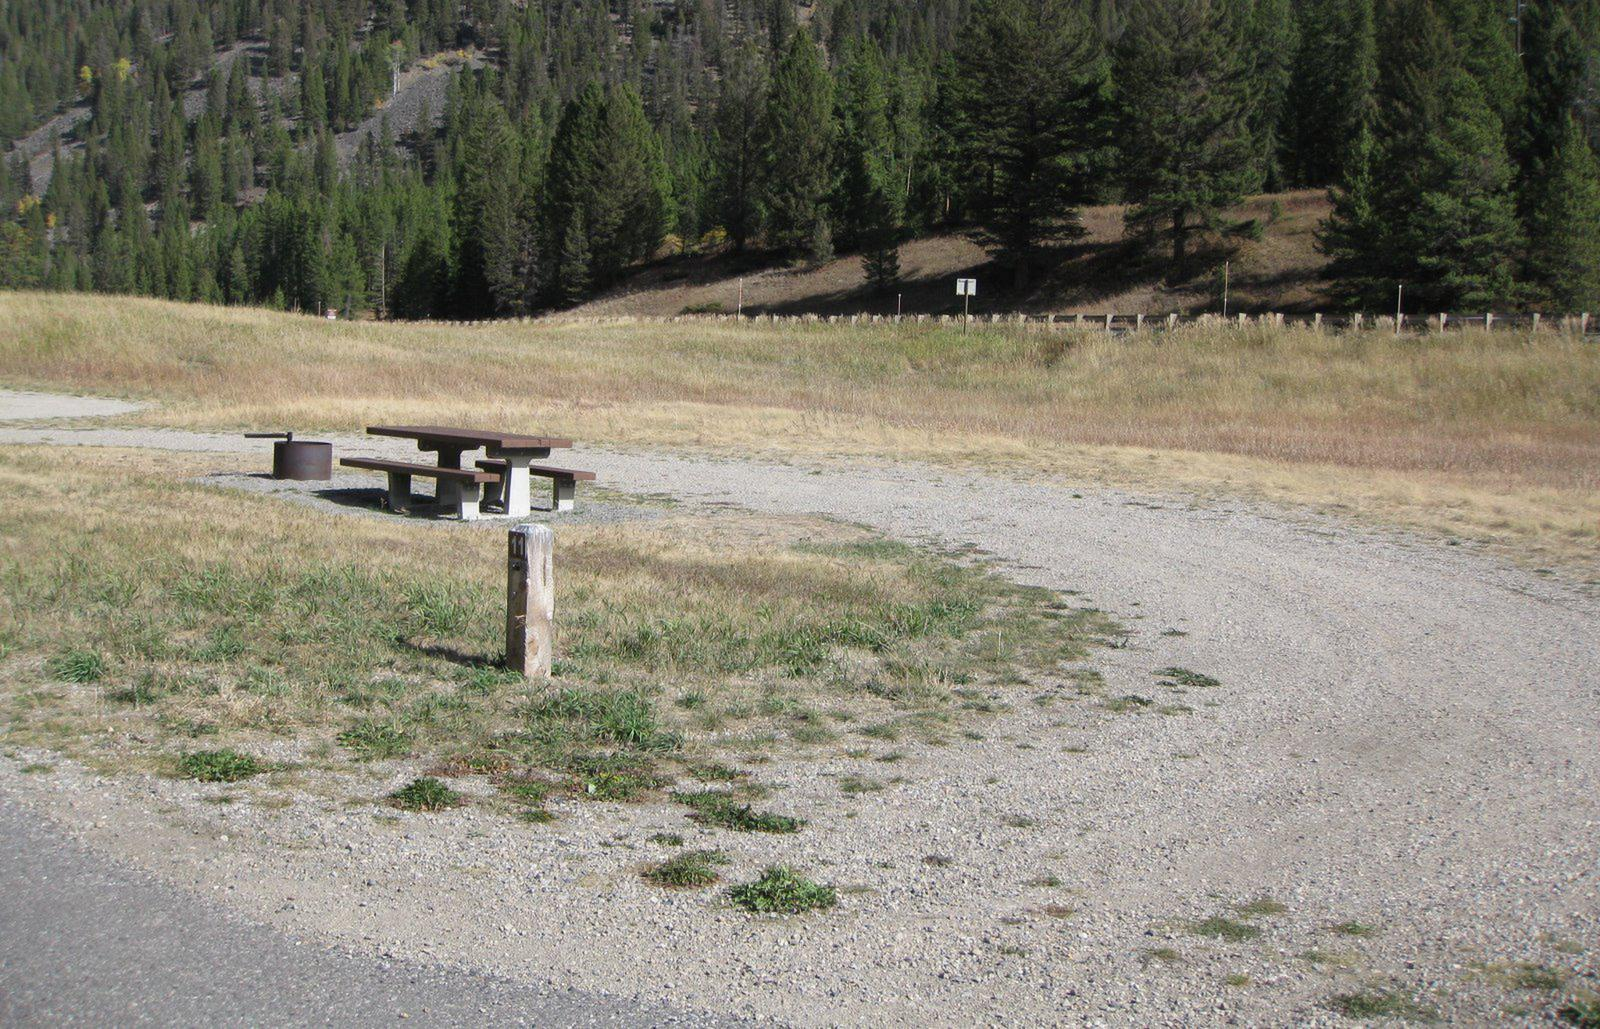 Site 11 campsite - pine trees along river, picnic table & fire ringSite 11